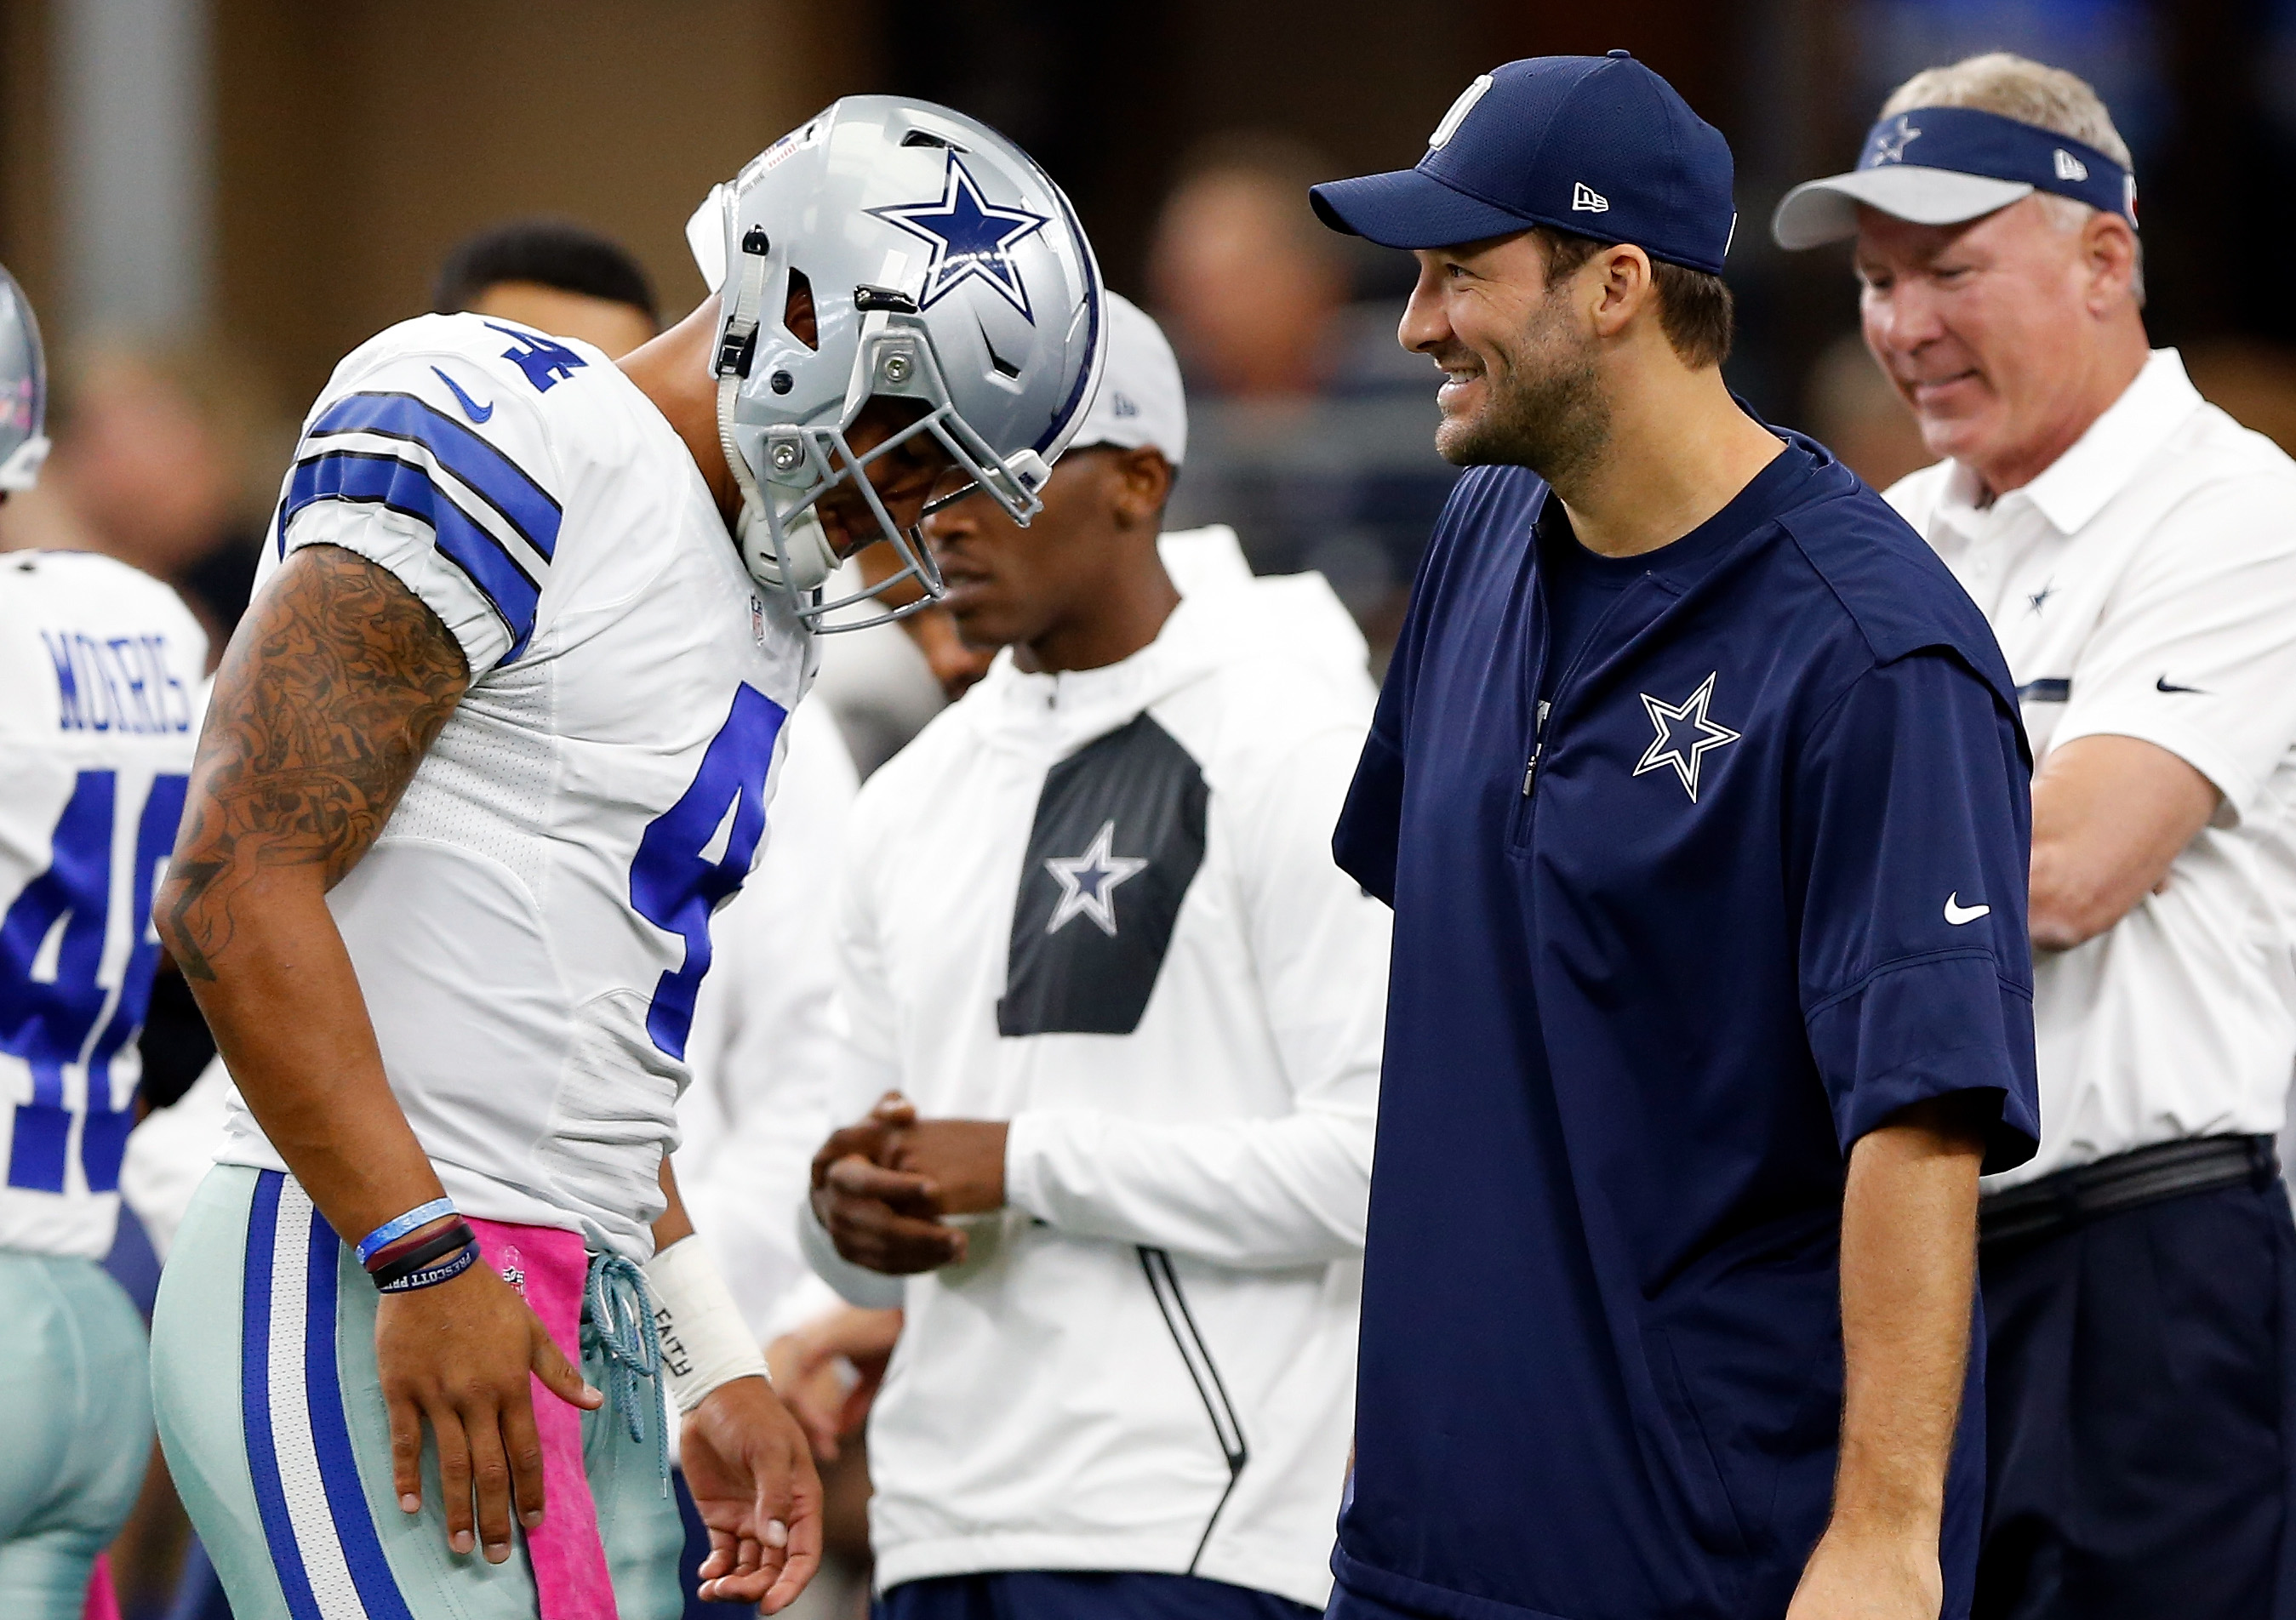 Tony Romo knew Dak Prescott was the Cowboys QB even before they beat the Steelers